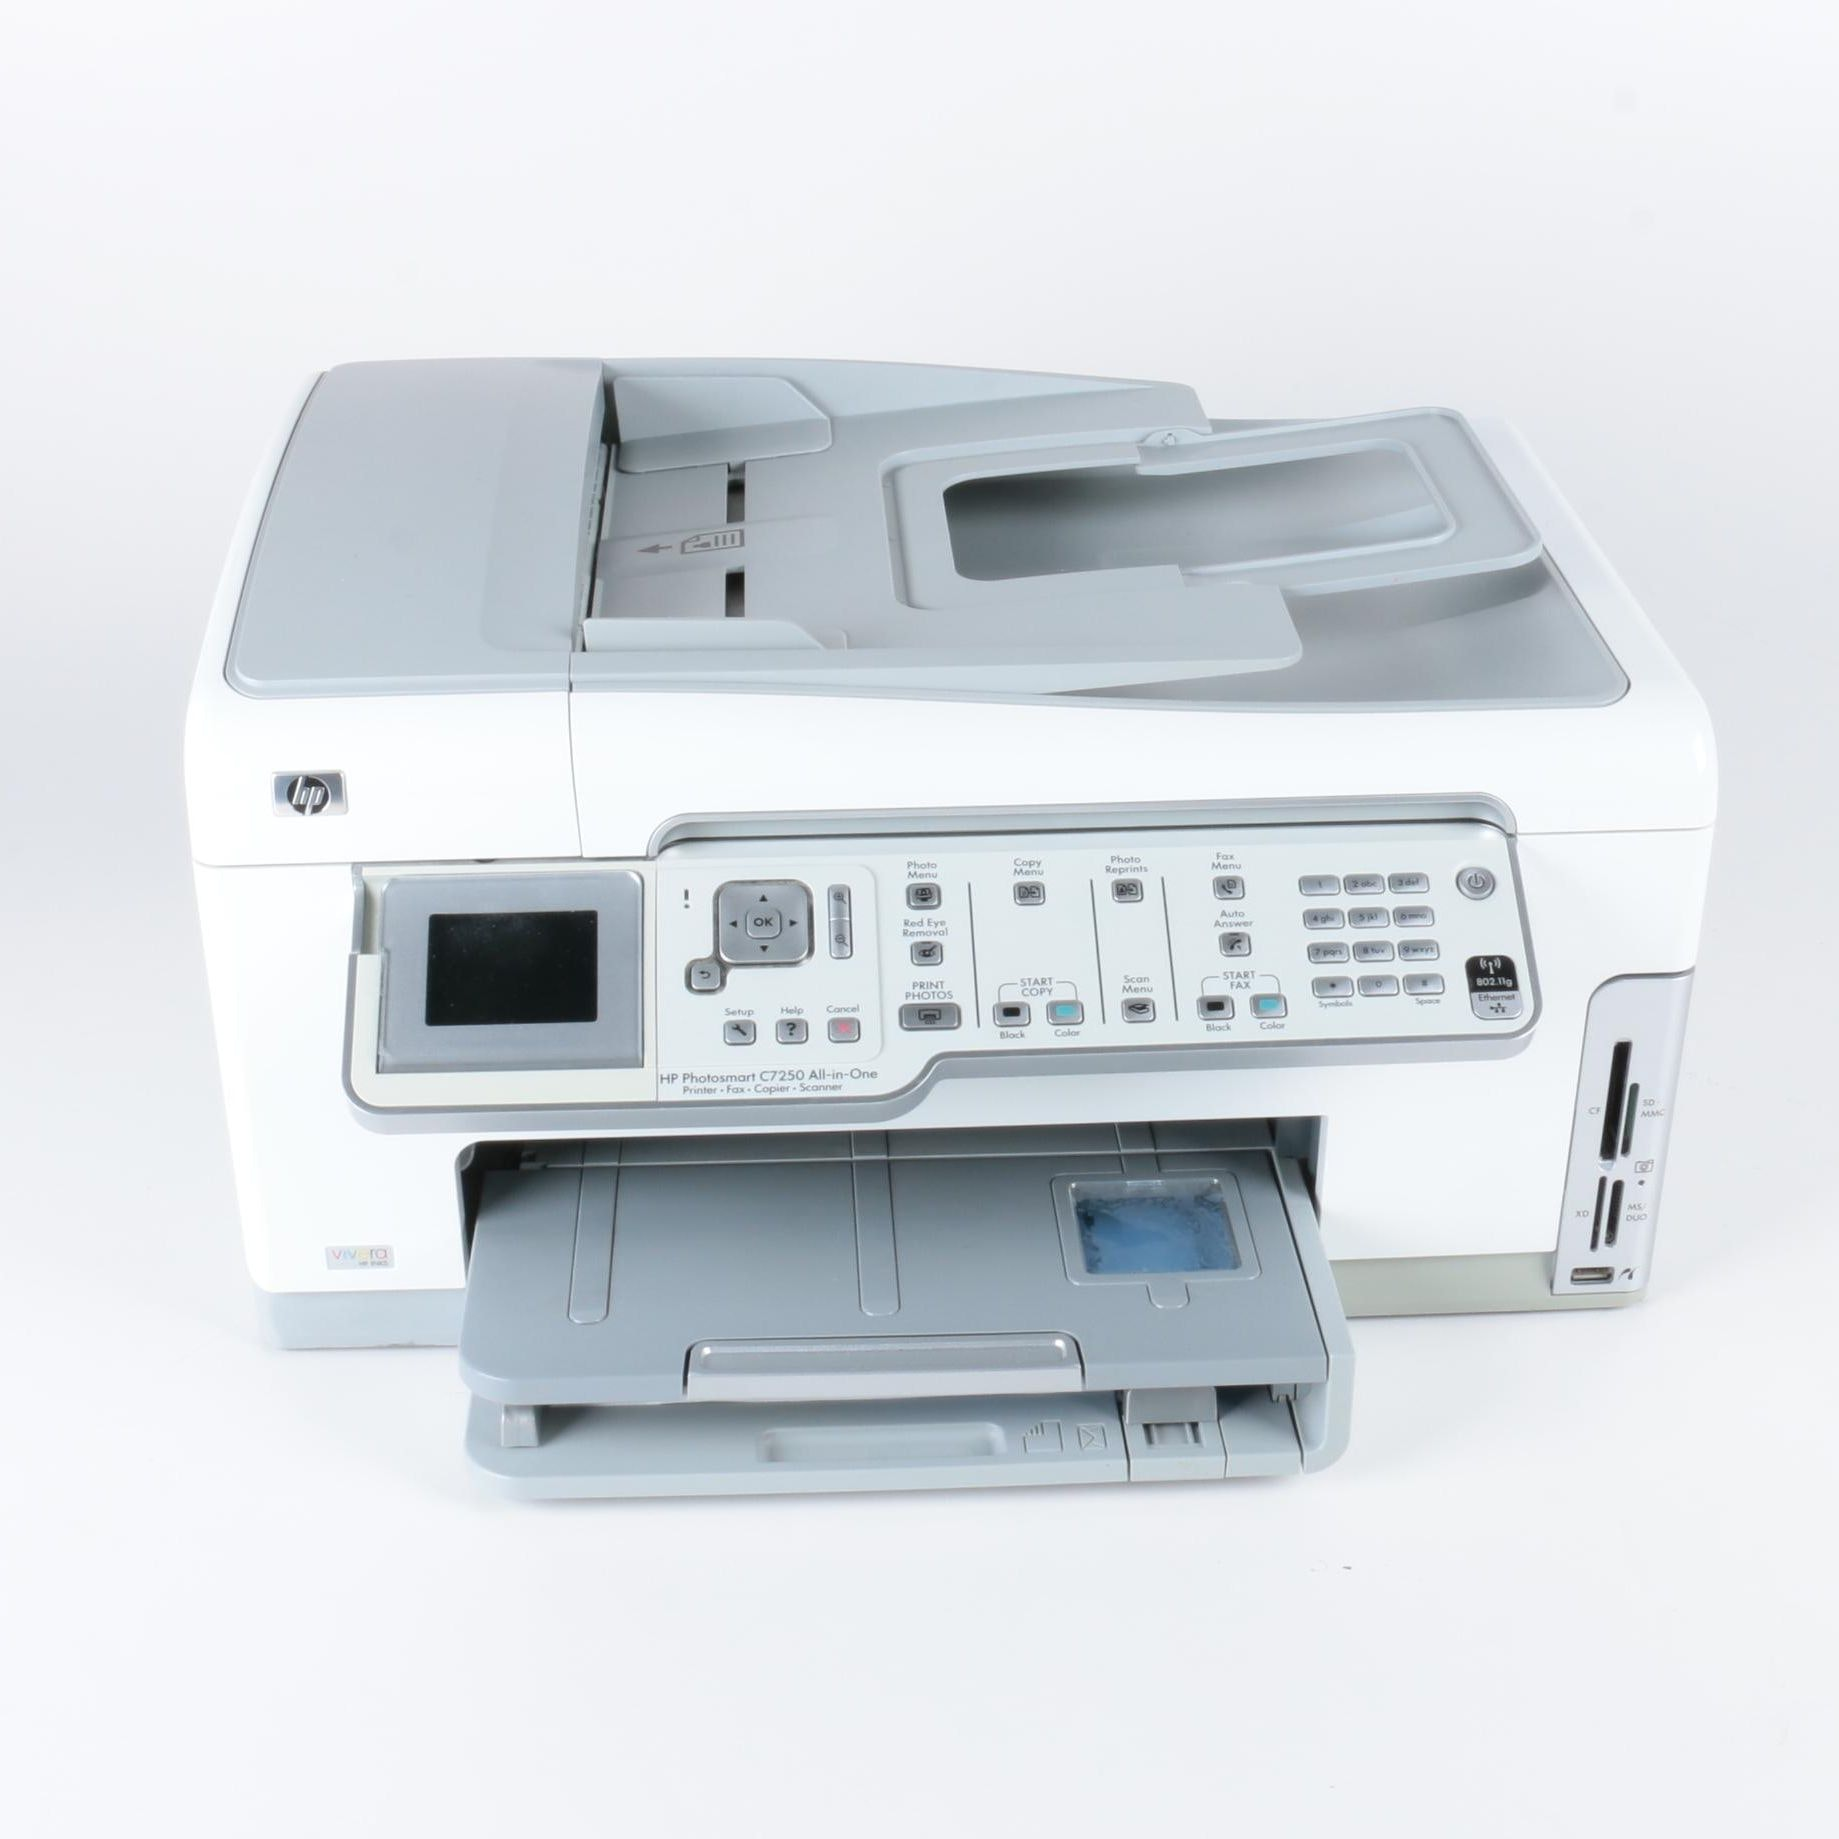 hp photosmart c7250 printer ebth rh ebth com hp photosmart c7250 owners manual HP C7250 Ink Cartridges